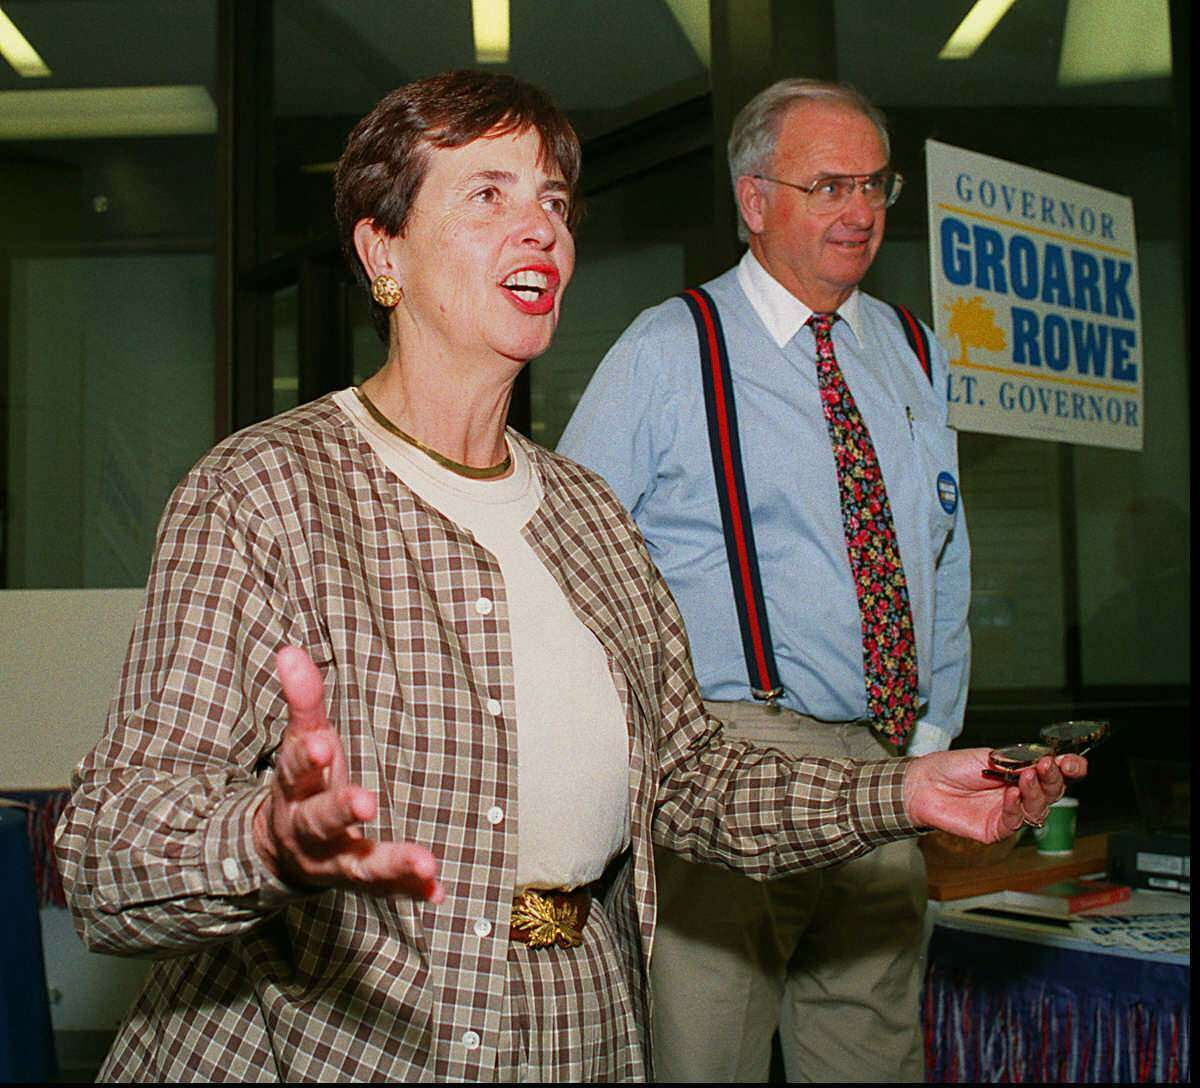 An undated photo of Eunice Groark, who serve as Connecticut Lt. Governor with Gov. Lowell Weicker from 1991 to 1995.